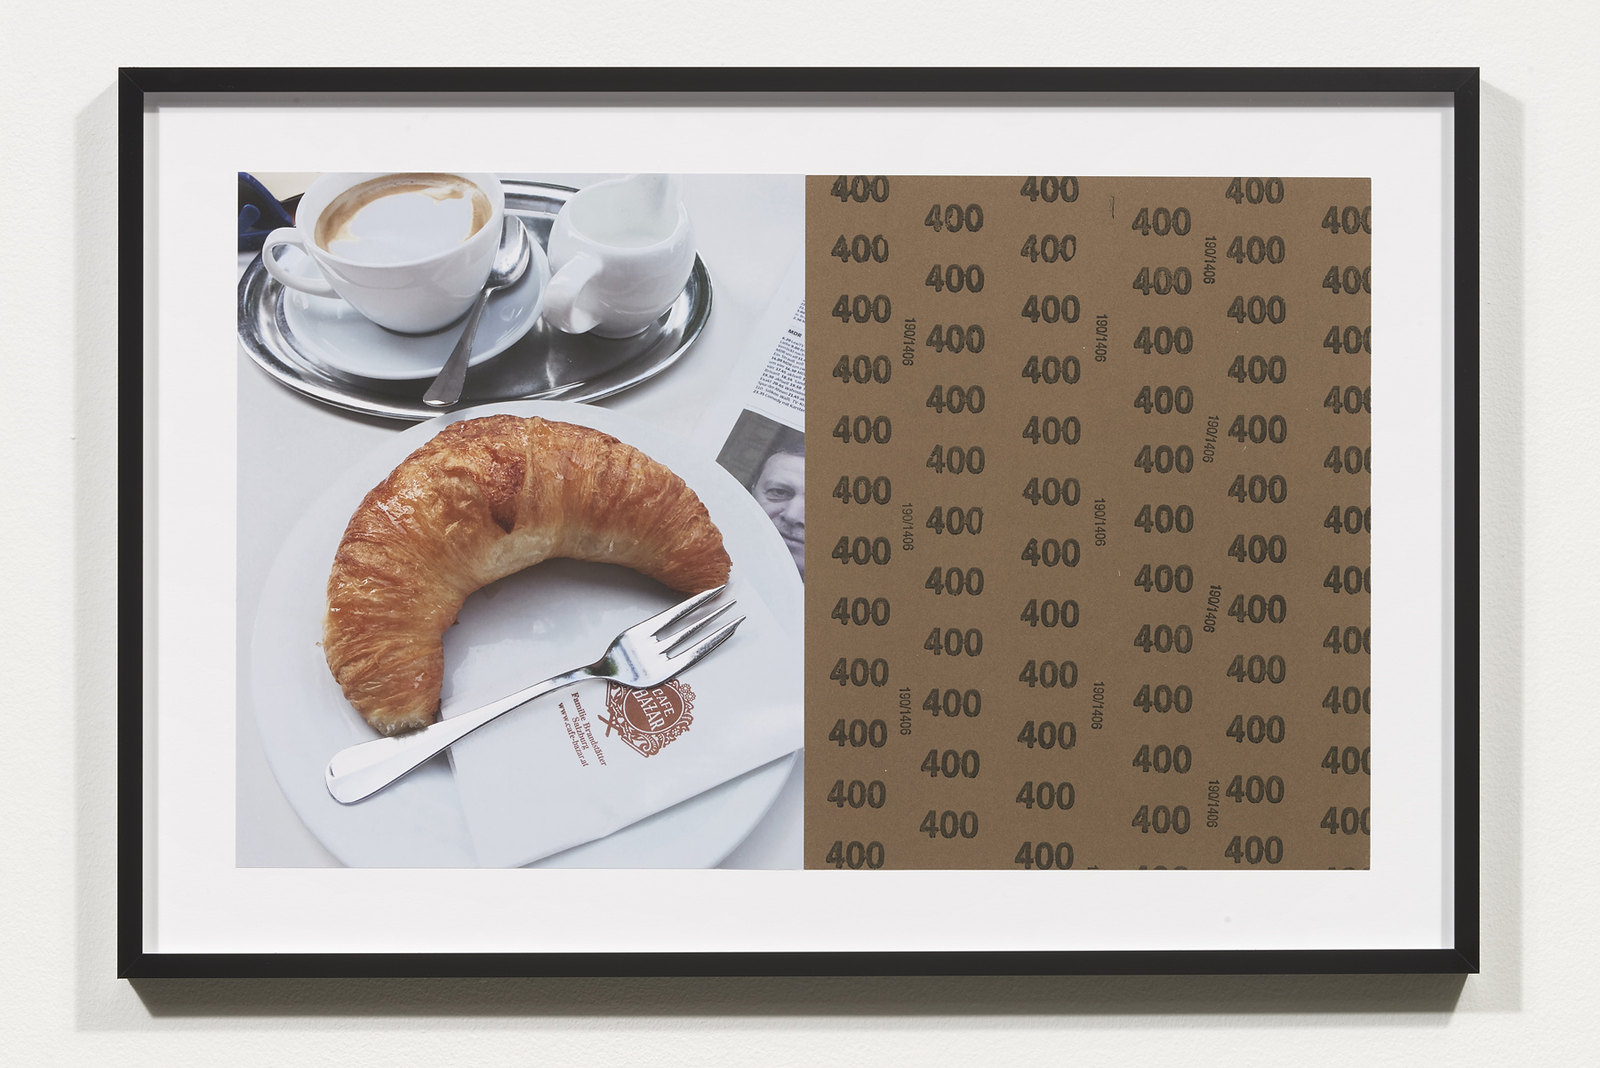 Wermers_Croissants & Architecture #2, 2016_C-print, sandpaper sheet, framed_14 3_8 x 21 1_2 in_NW00043PG